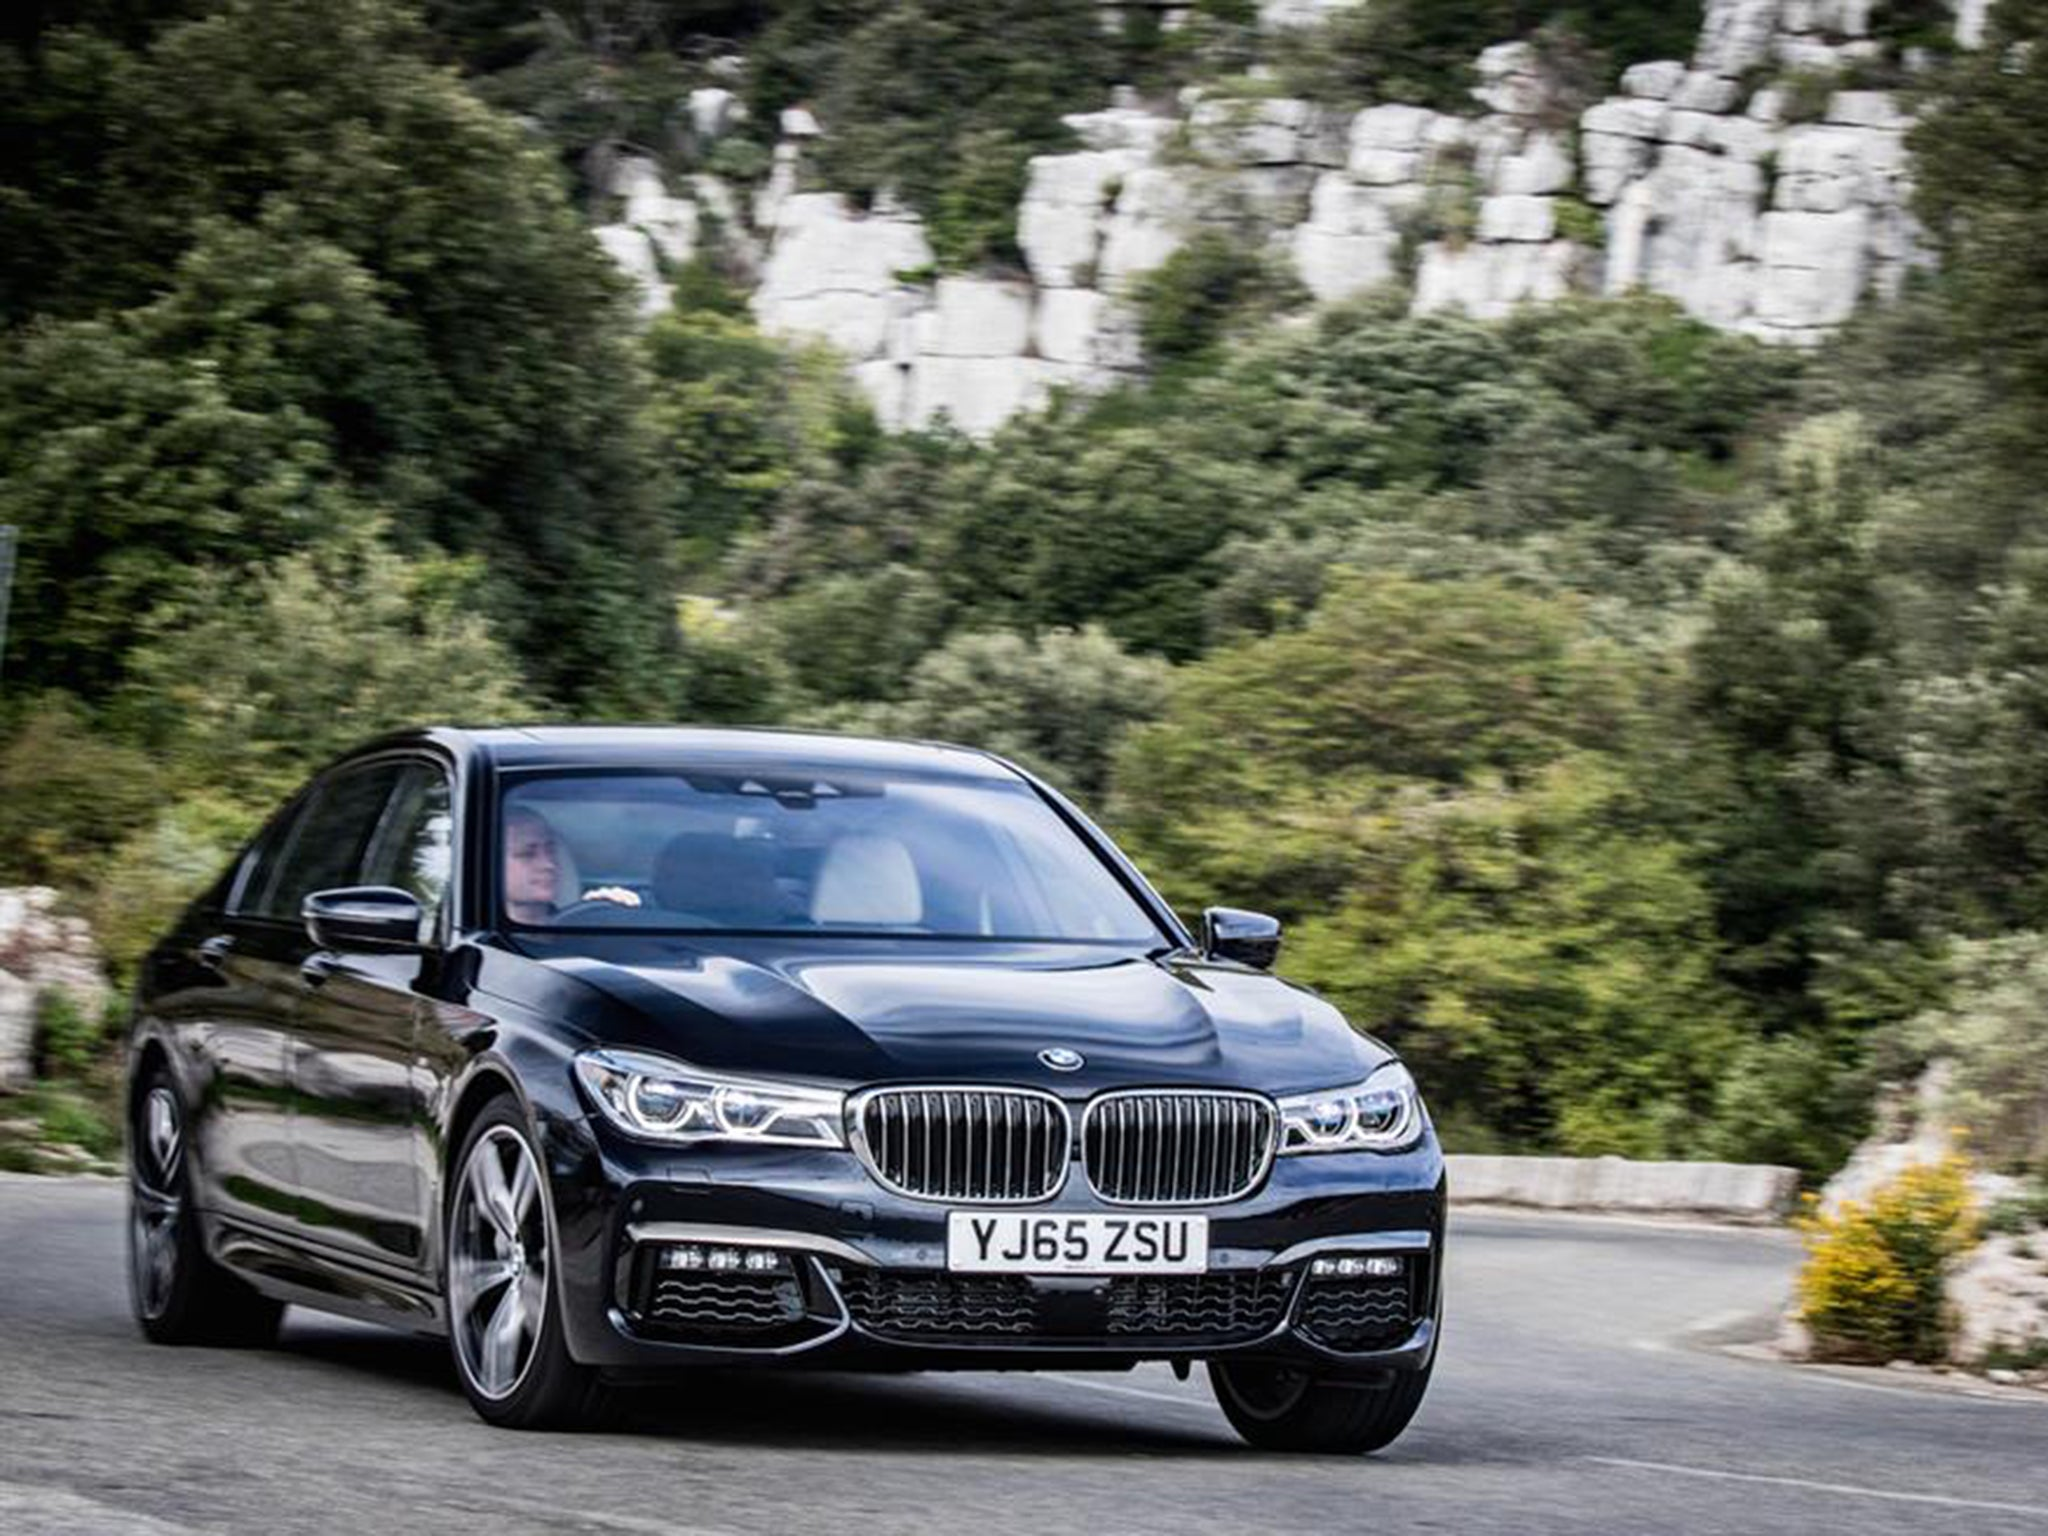 Bmw 7 Series Best Luxury Cars: Six Best Luxury Cars: From The BMW 7 Series And Audi A8 To